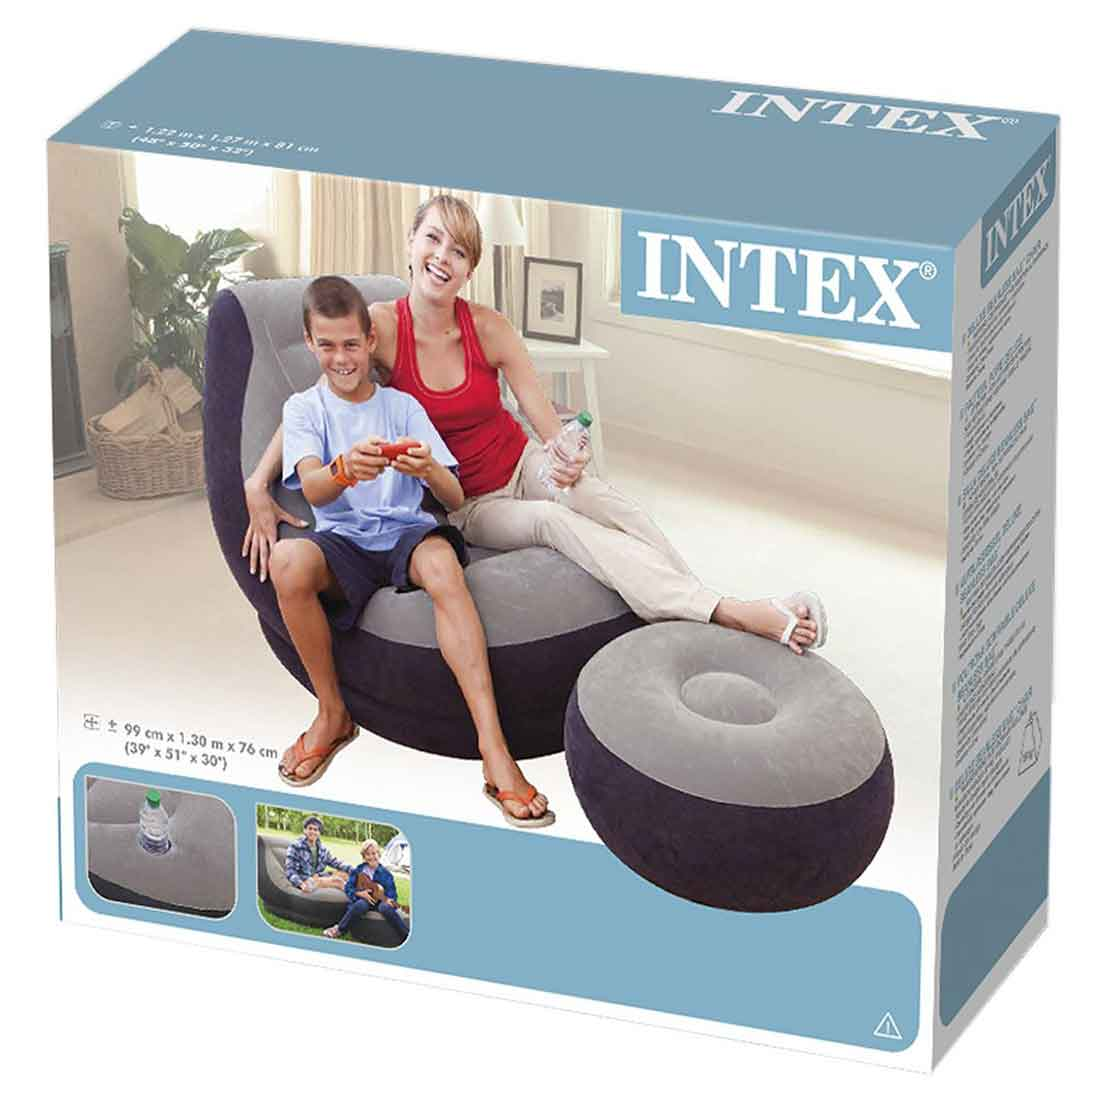 Air Sofa Price In Bangladesh: Inflatable Ultra Lounge Chair And Ottoman Set Price In